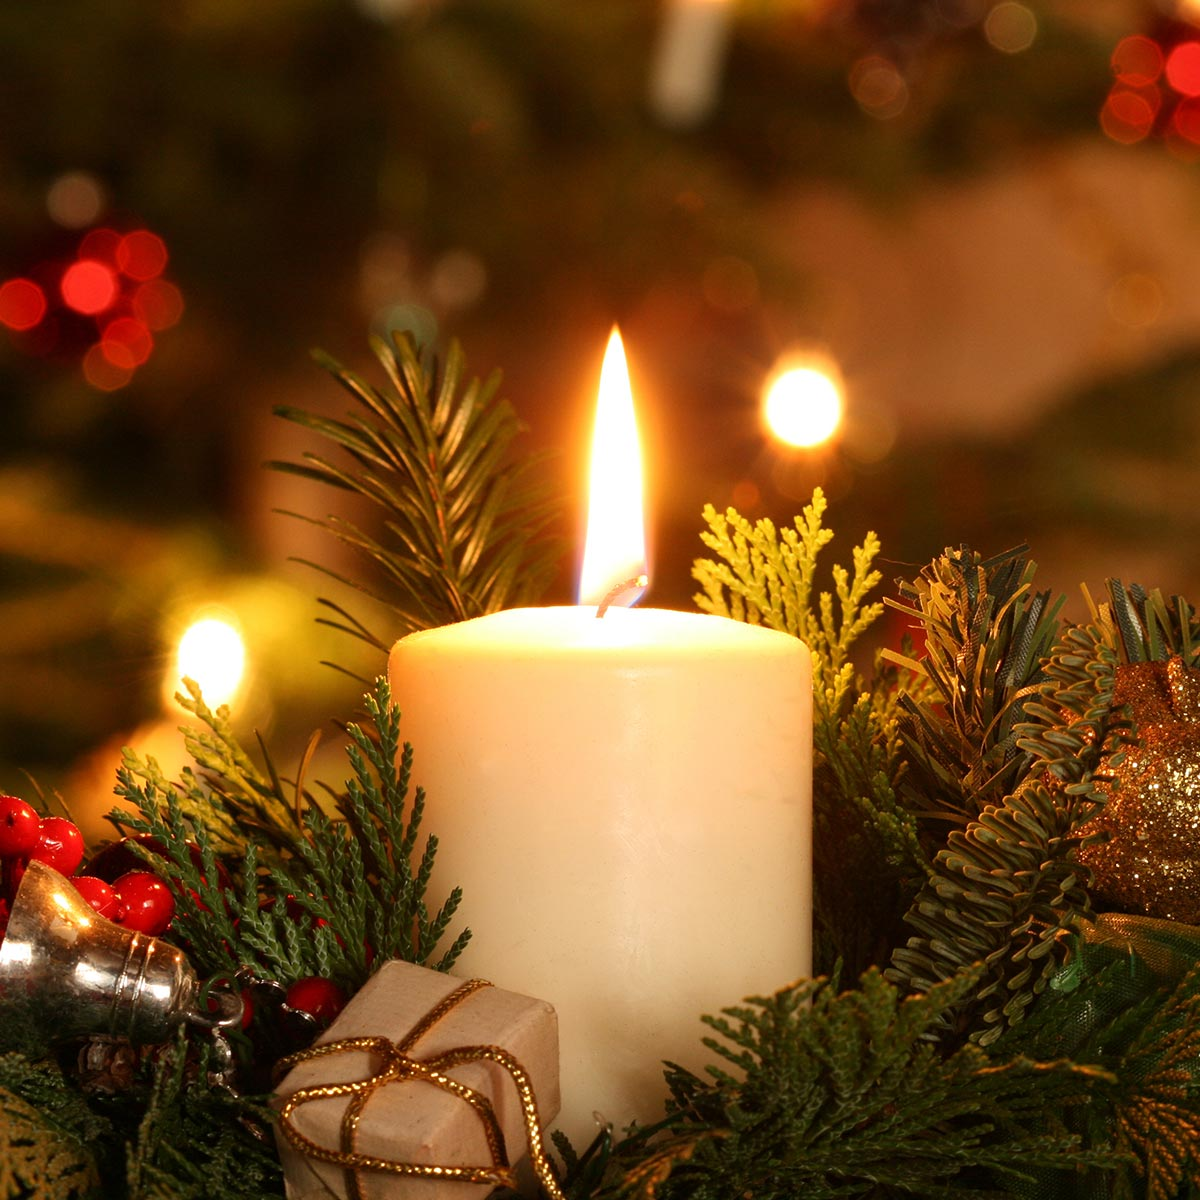 image showing candles